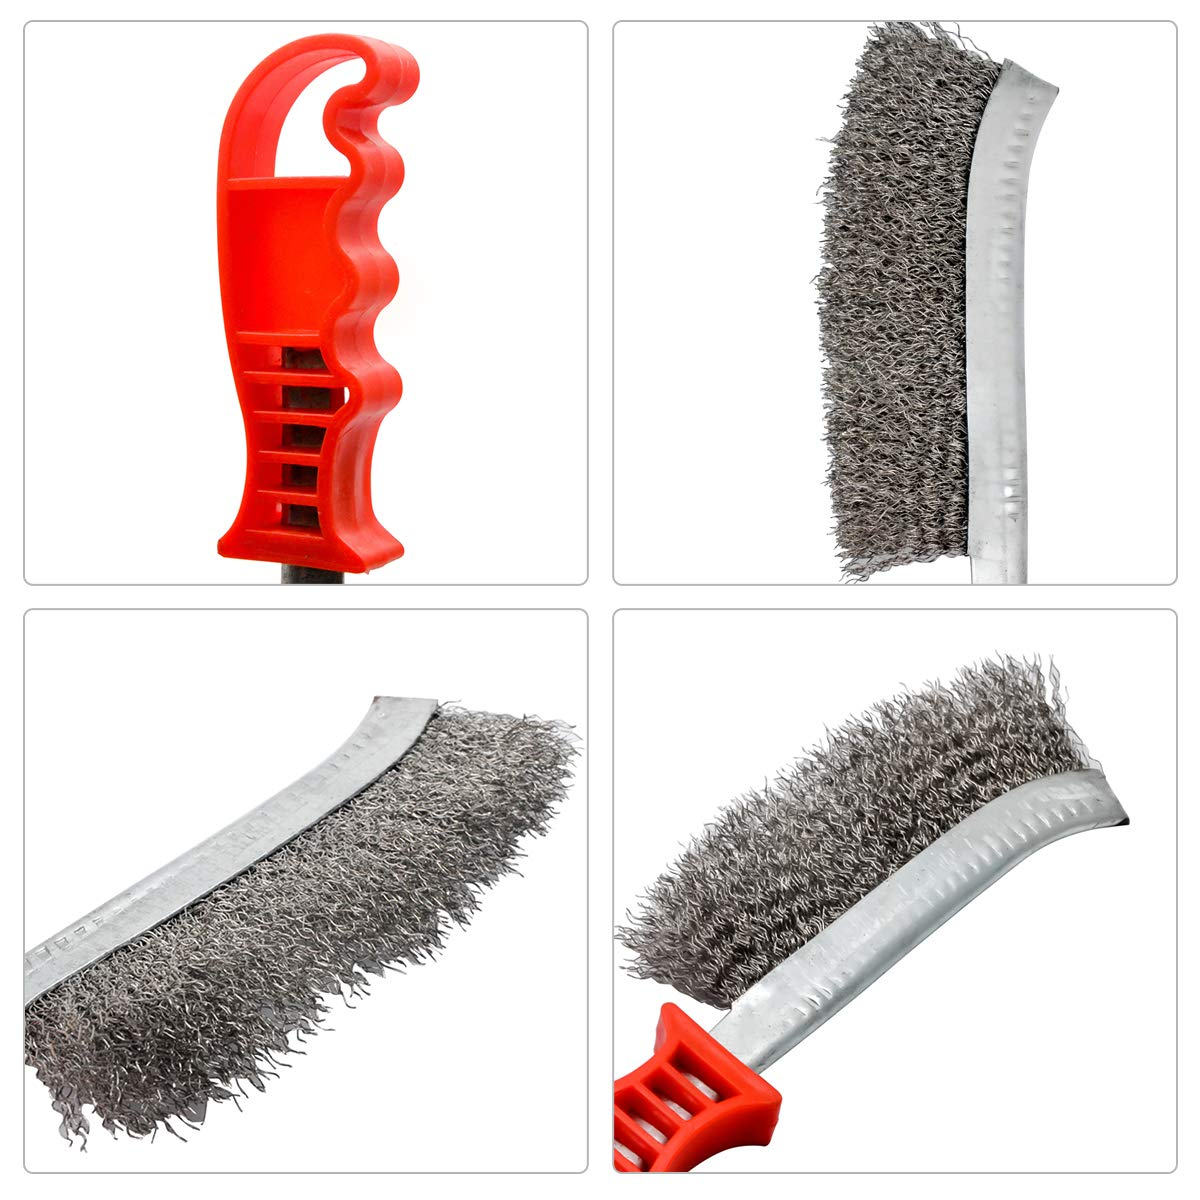 Curved Stainless Steel Wire Scratch Brush-MASO Cleaning Hand Brush 24cm Long Red,Easy to grip apply to Industrial,Rust Corrosion And Paint Removal.